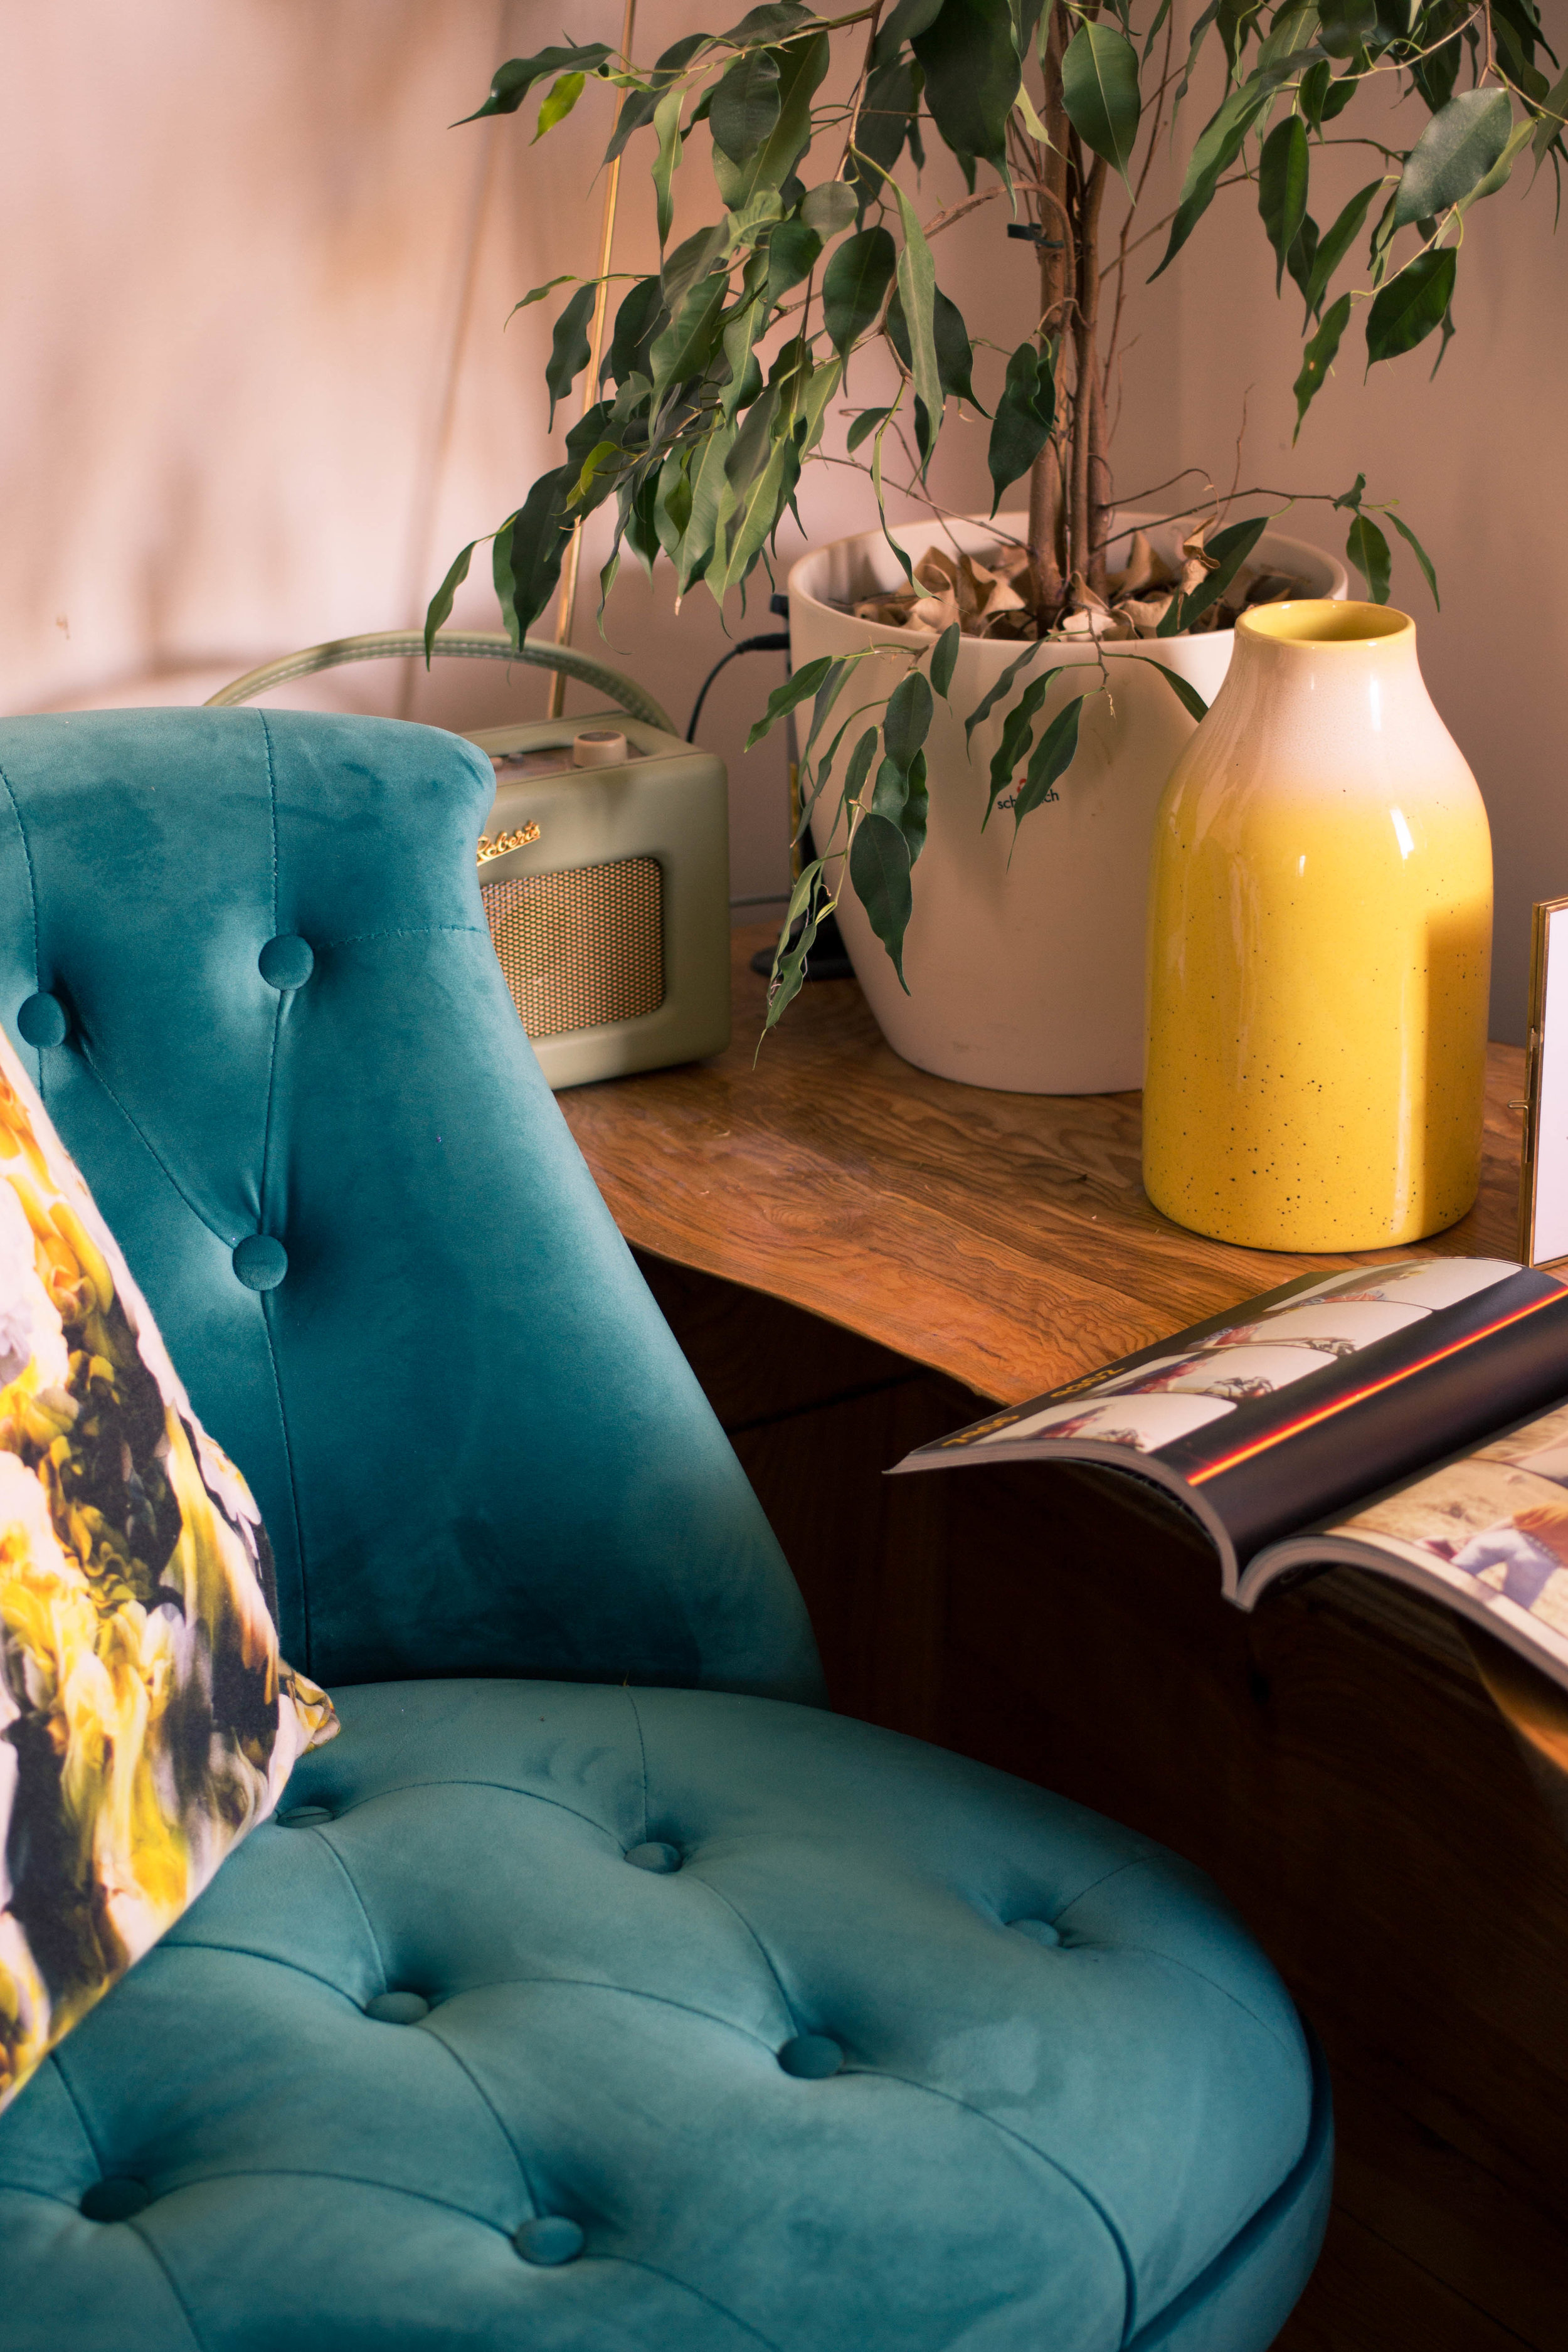 Styling-a-cosy-corner-rush-and-teal-12.jpg